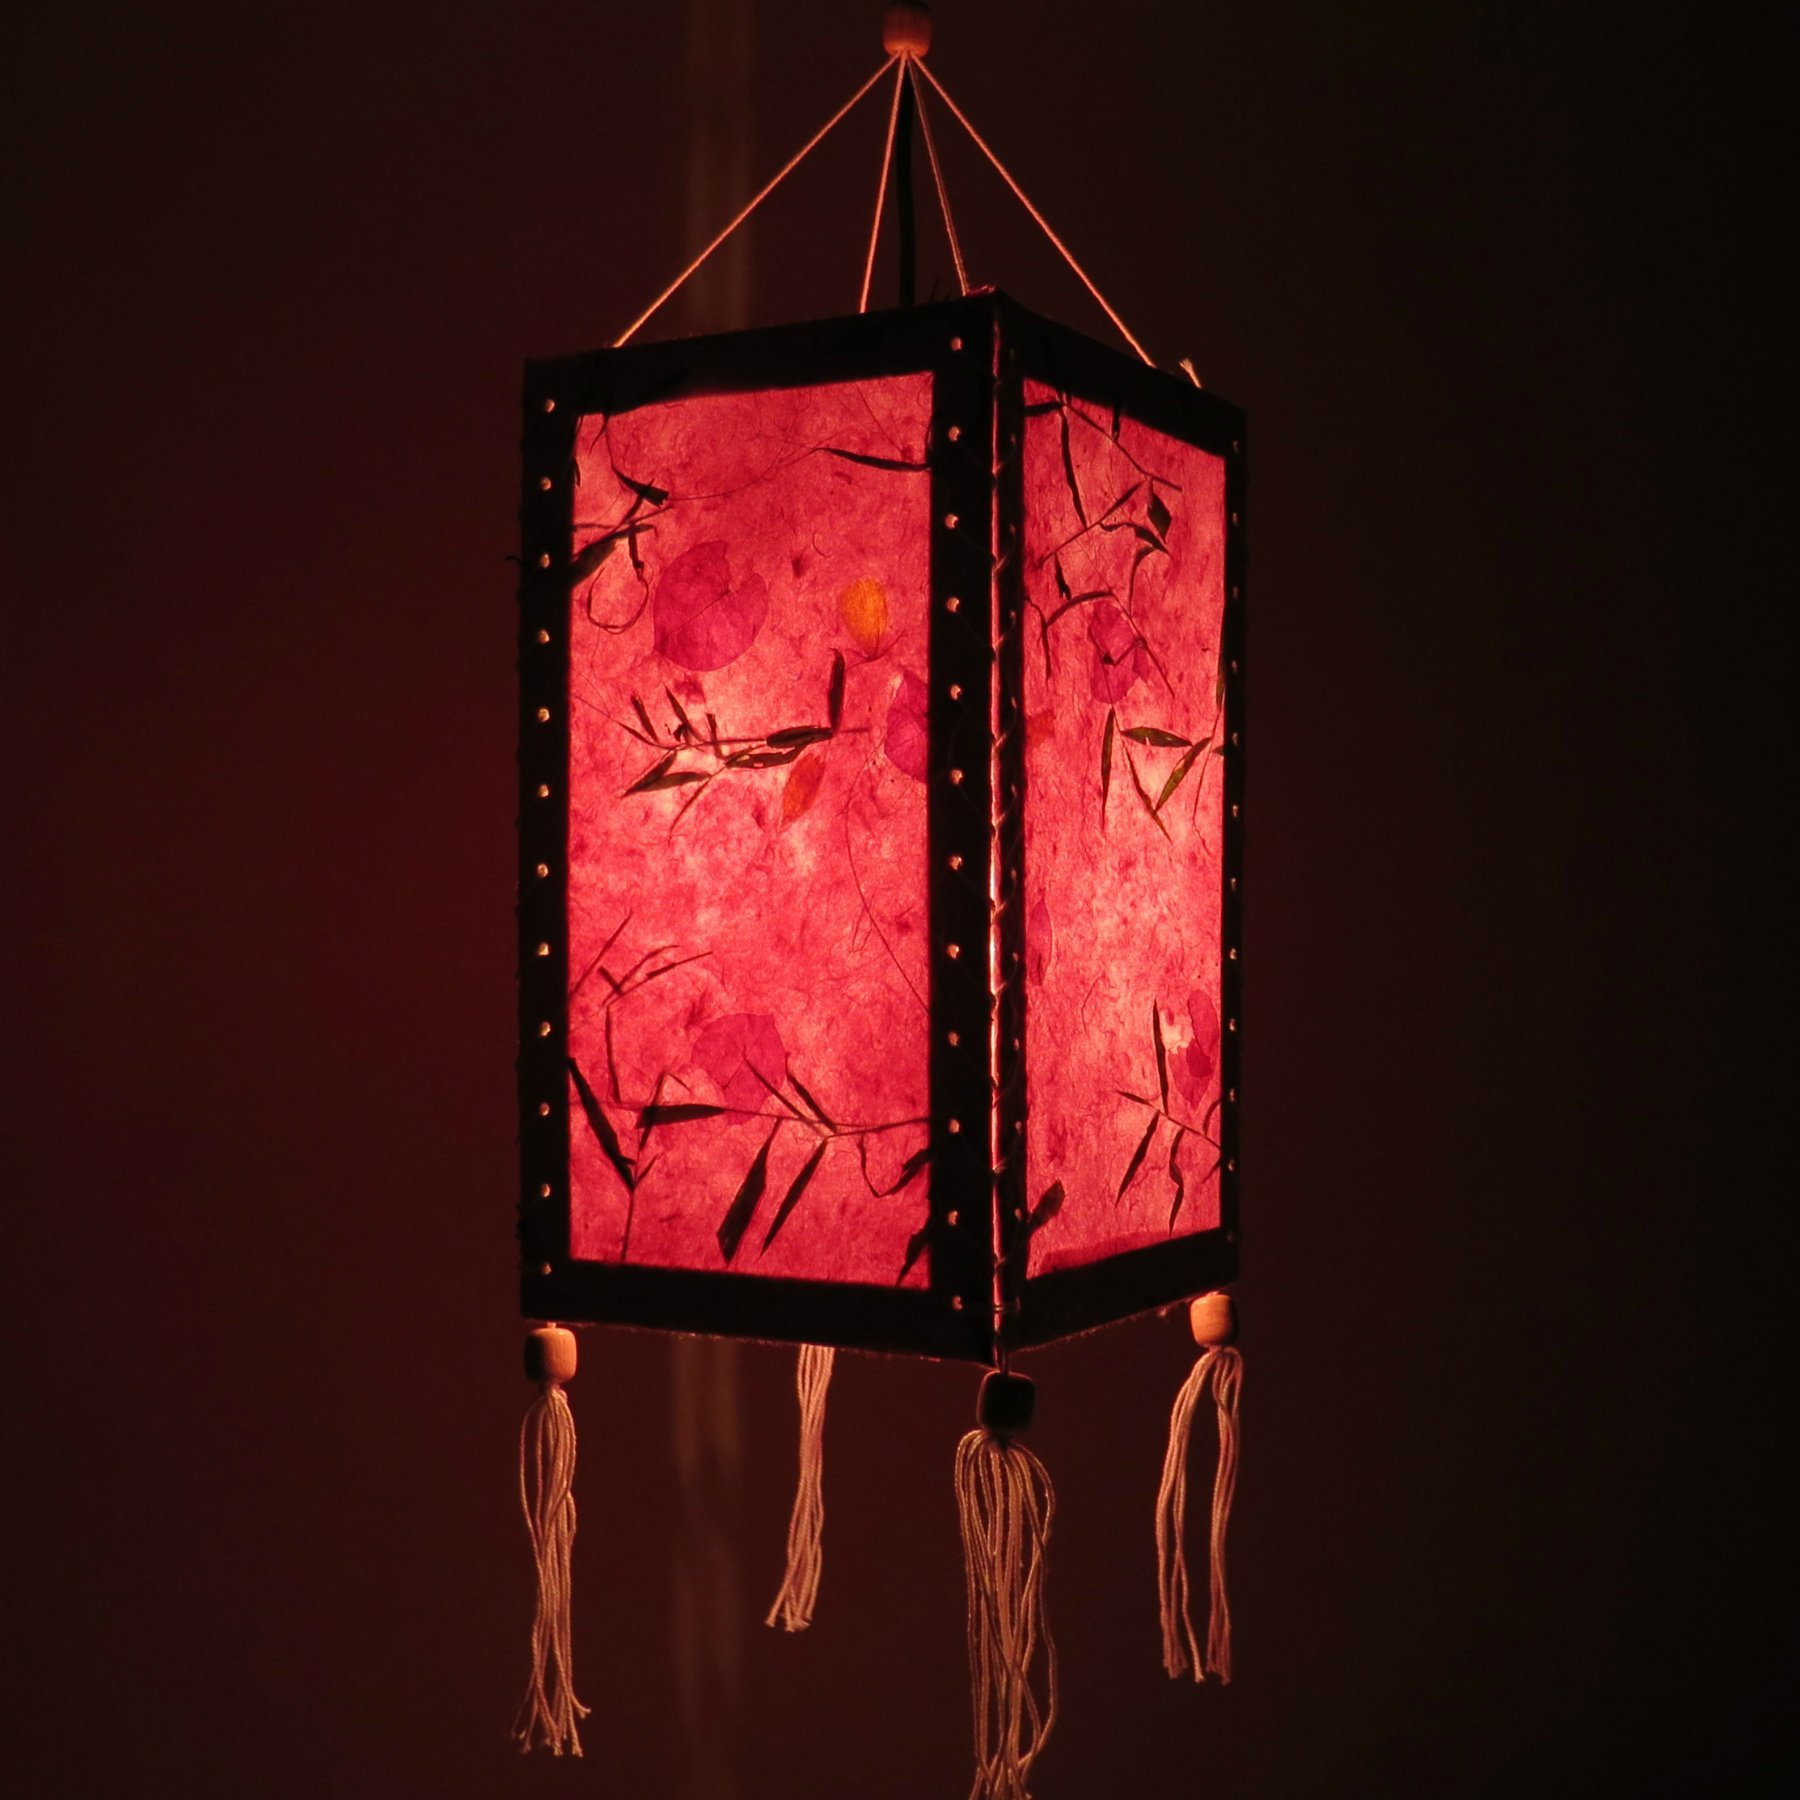 12'' Hanging Paper Lampshade Lantern made of Saa Paper, Light Lamp Shades for Wedding, Birthday Party, Home Decor (Pink)